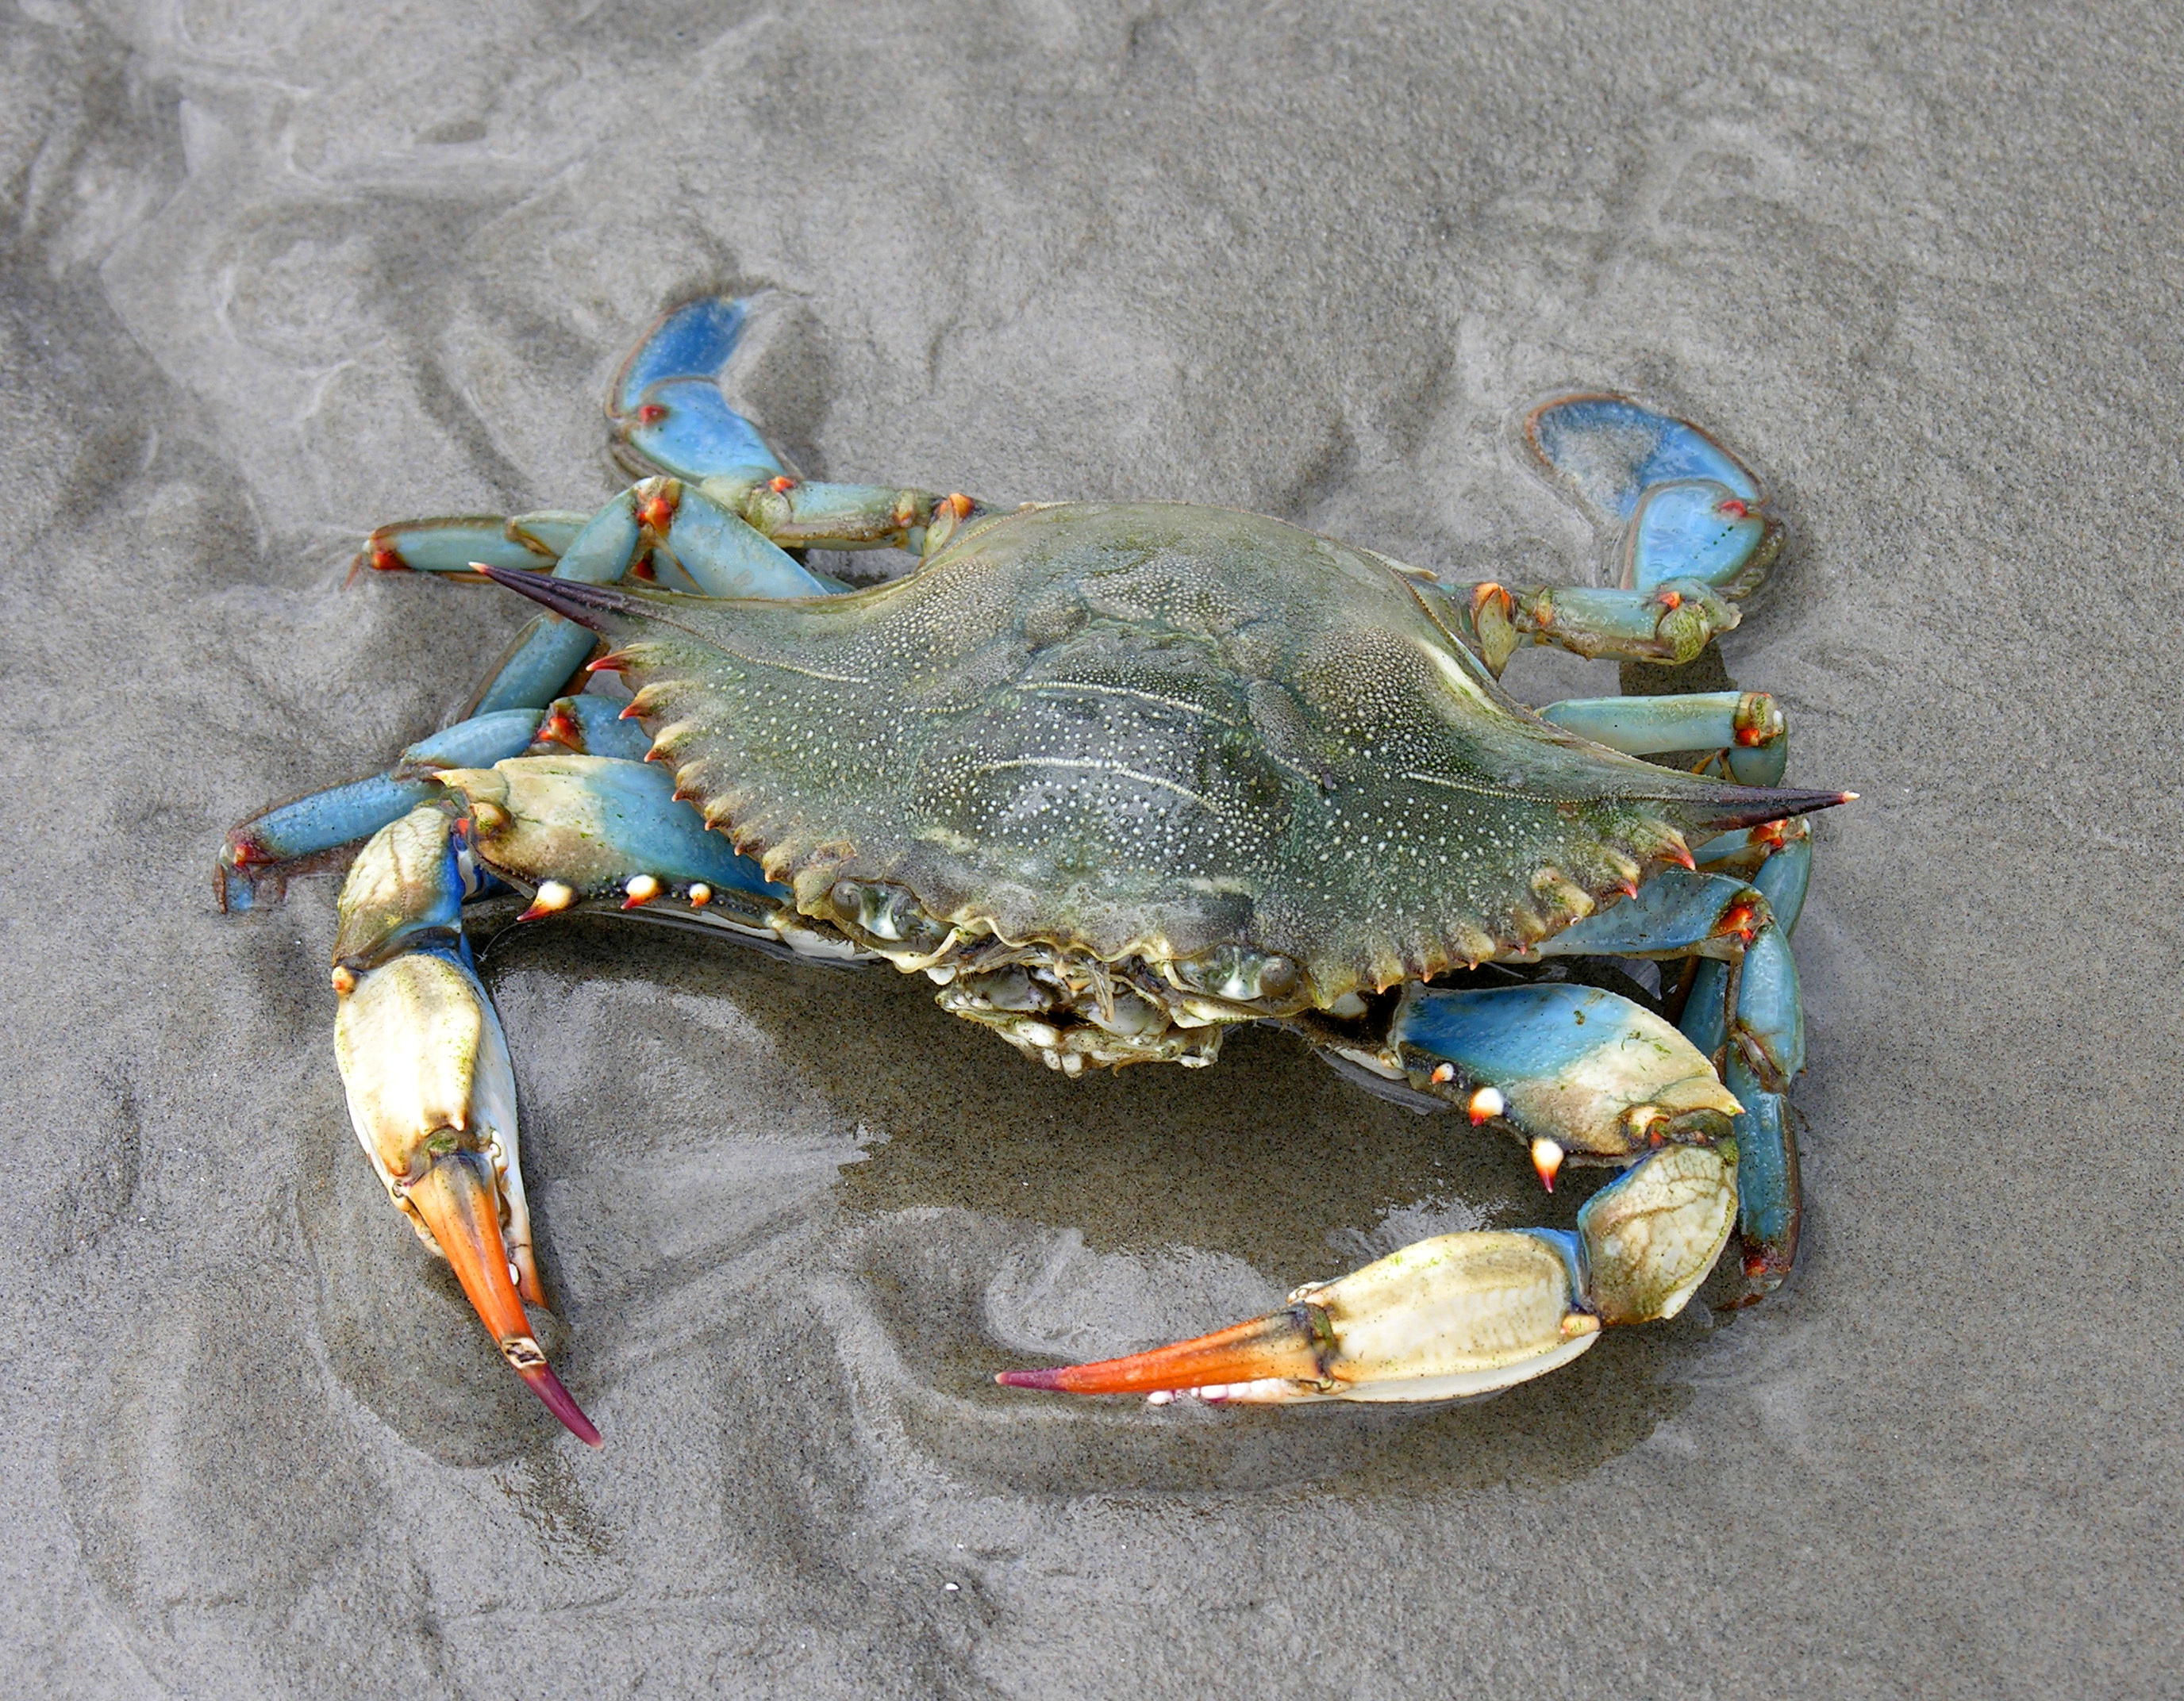 Image of blue crab